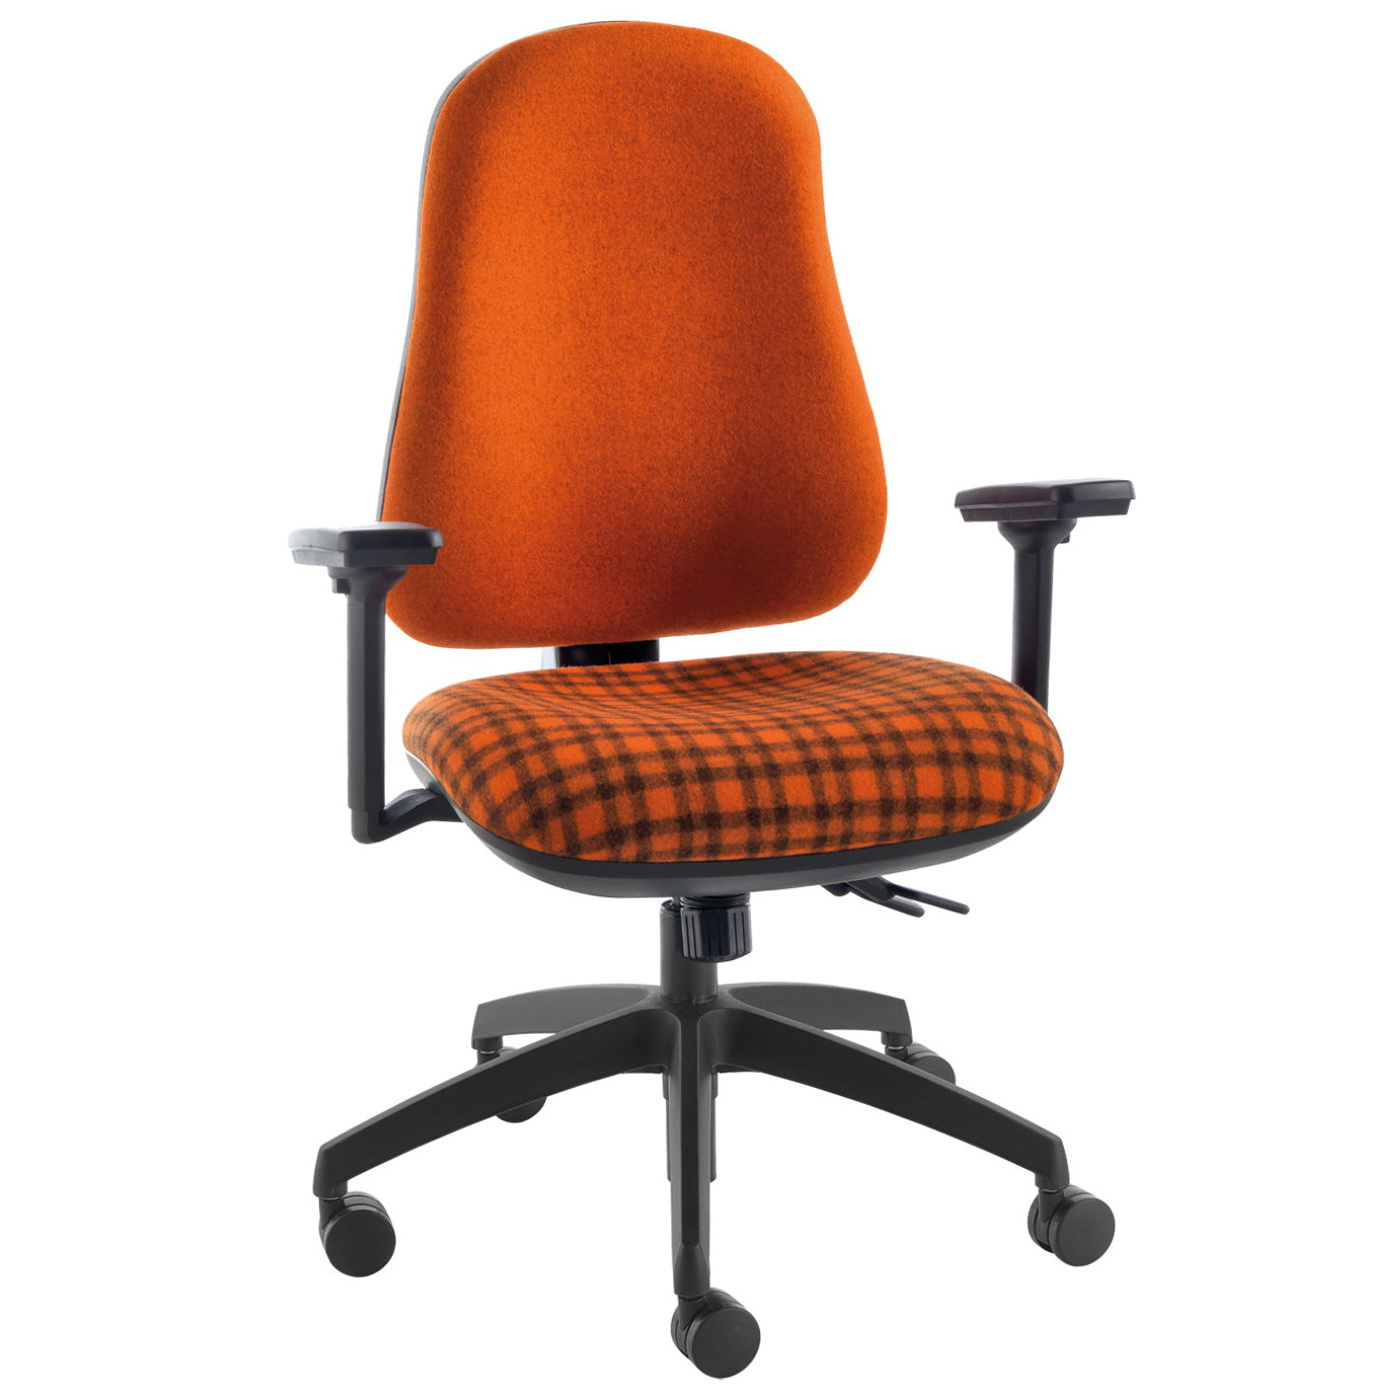 Office Chair Posture Posture Cushion For Office Chair Home Design Ideas